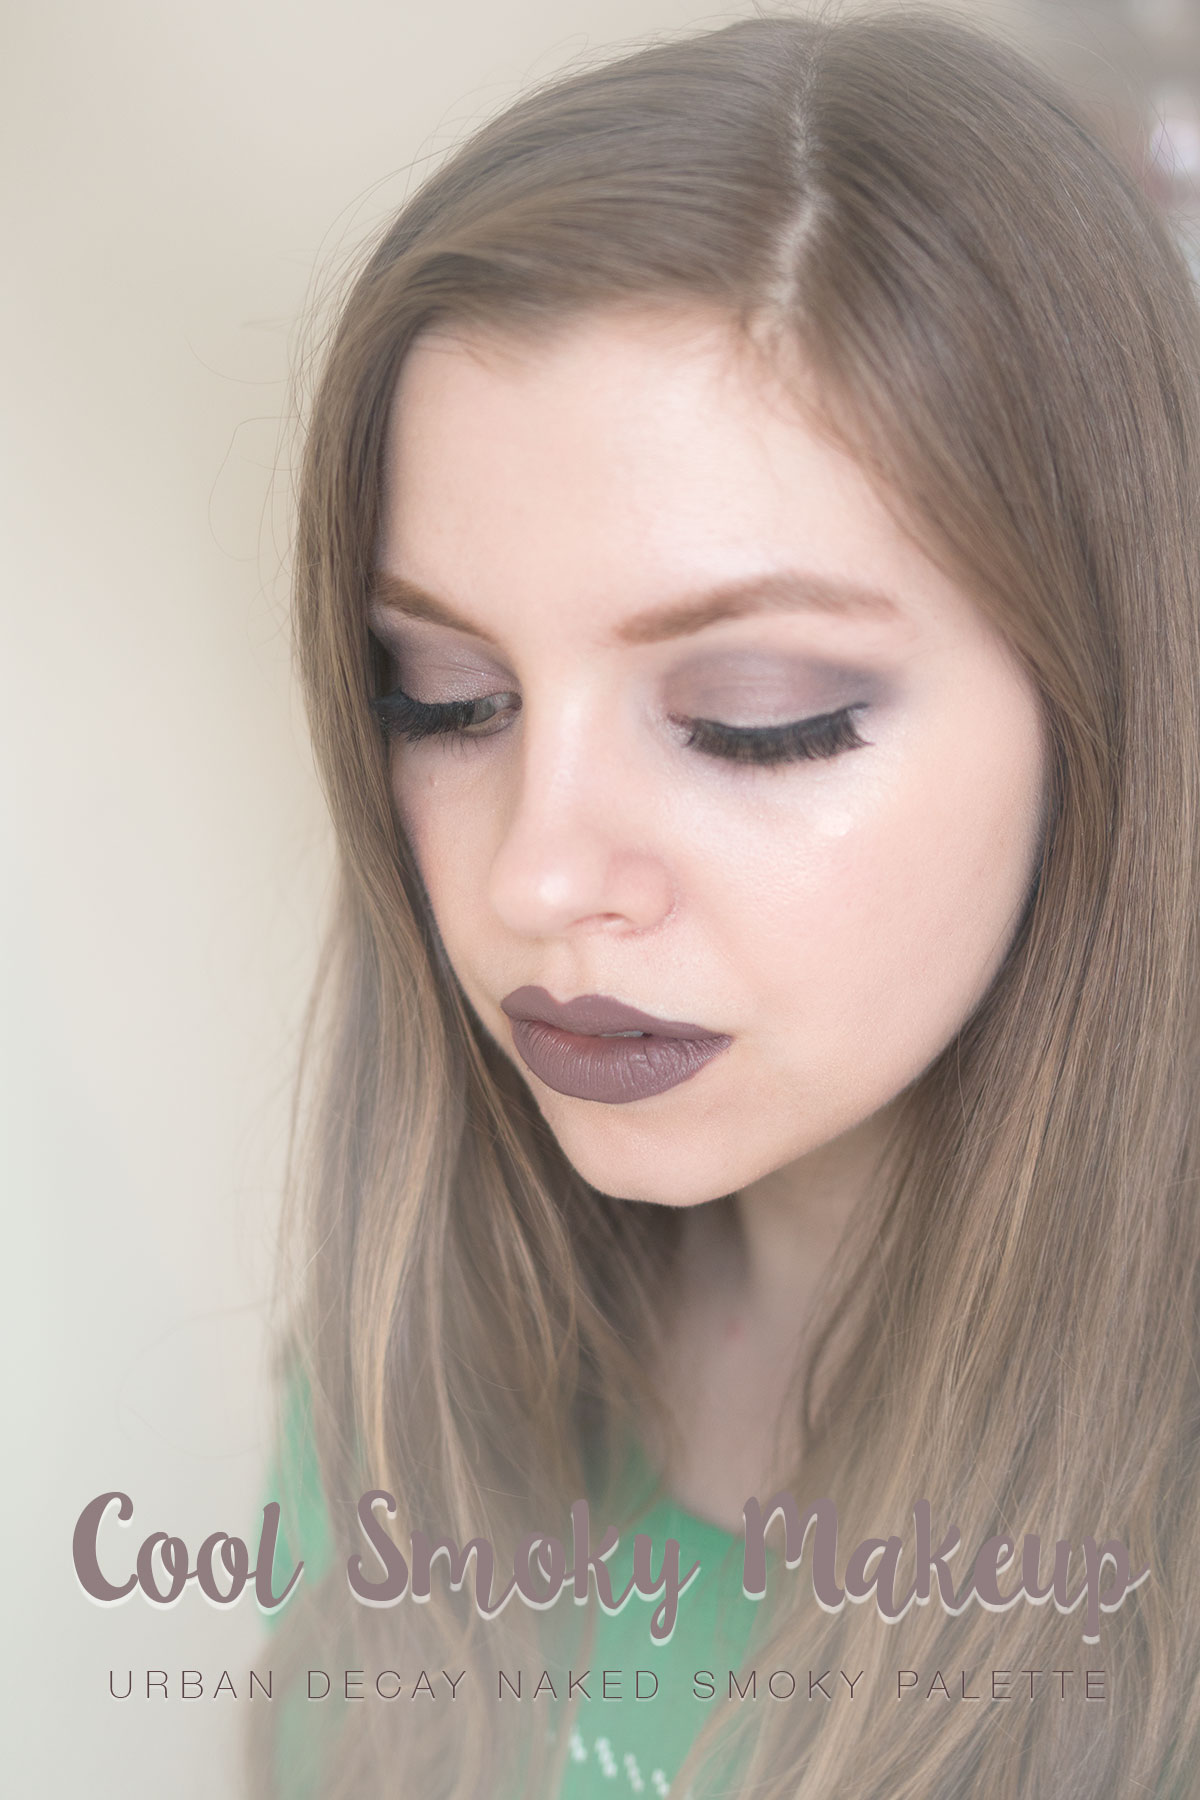 Urban Decay Naked Smoky Palette Tutorial: Cool Smoky Eye & Gray Lip // hellorigby seattle fashion & beauty blog